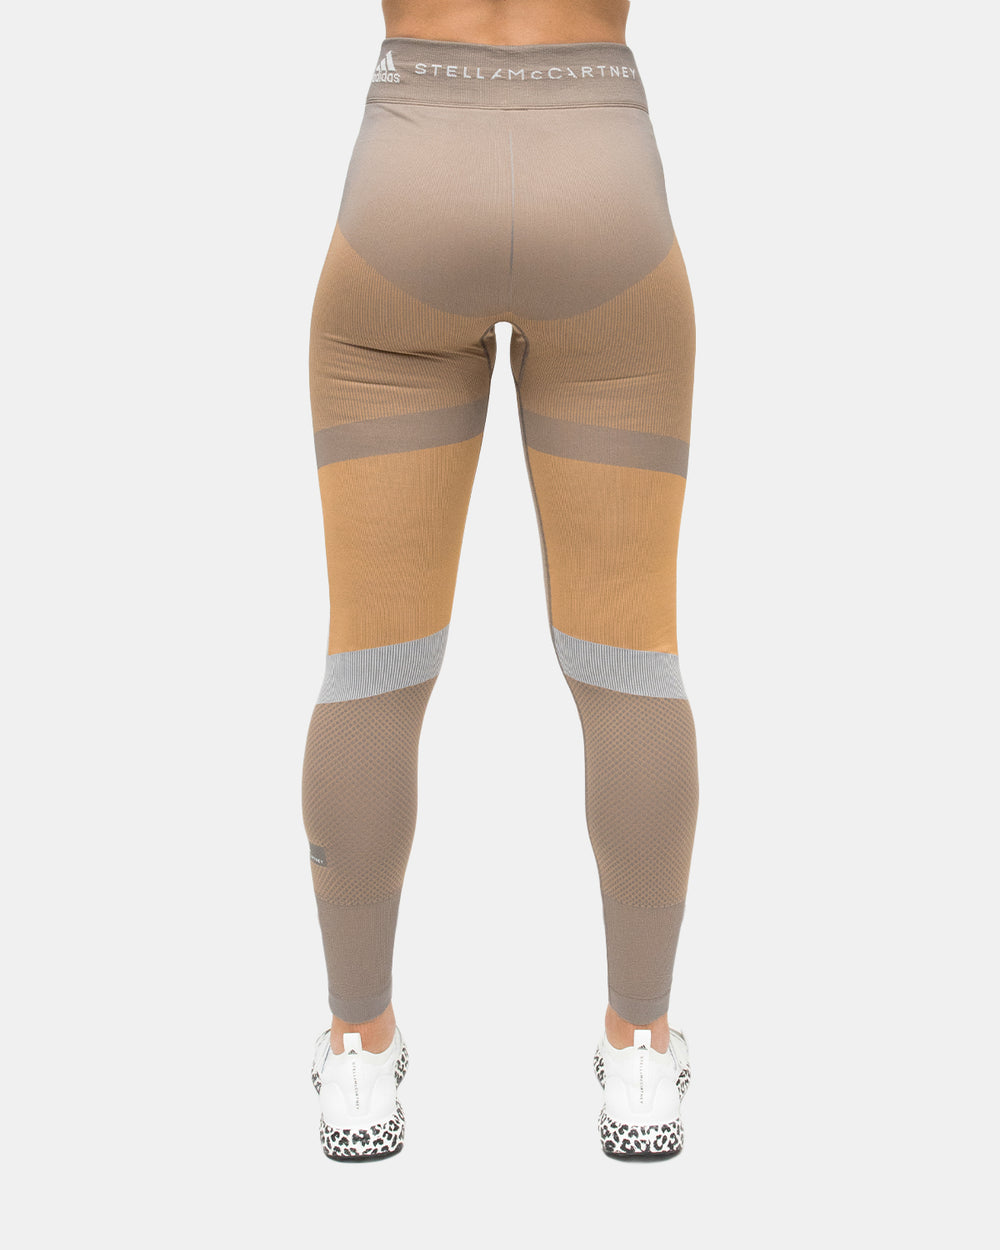 adidas - Women's adidas by Stella McCartney Knit Running Leggings (Explorer Carbon | Cardboard)